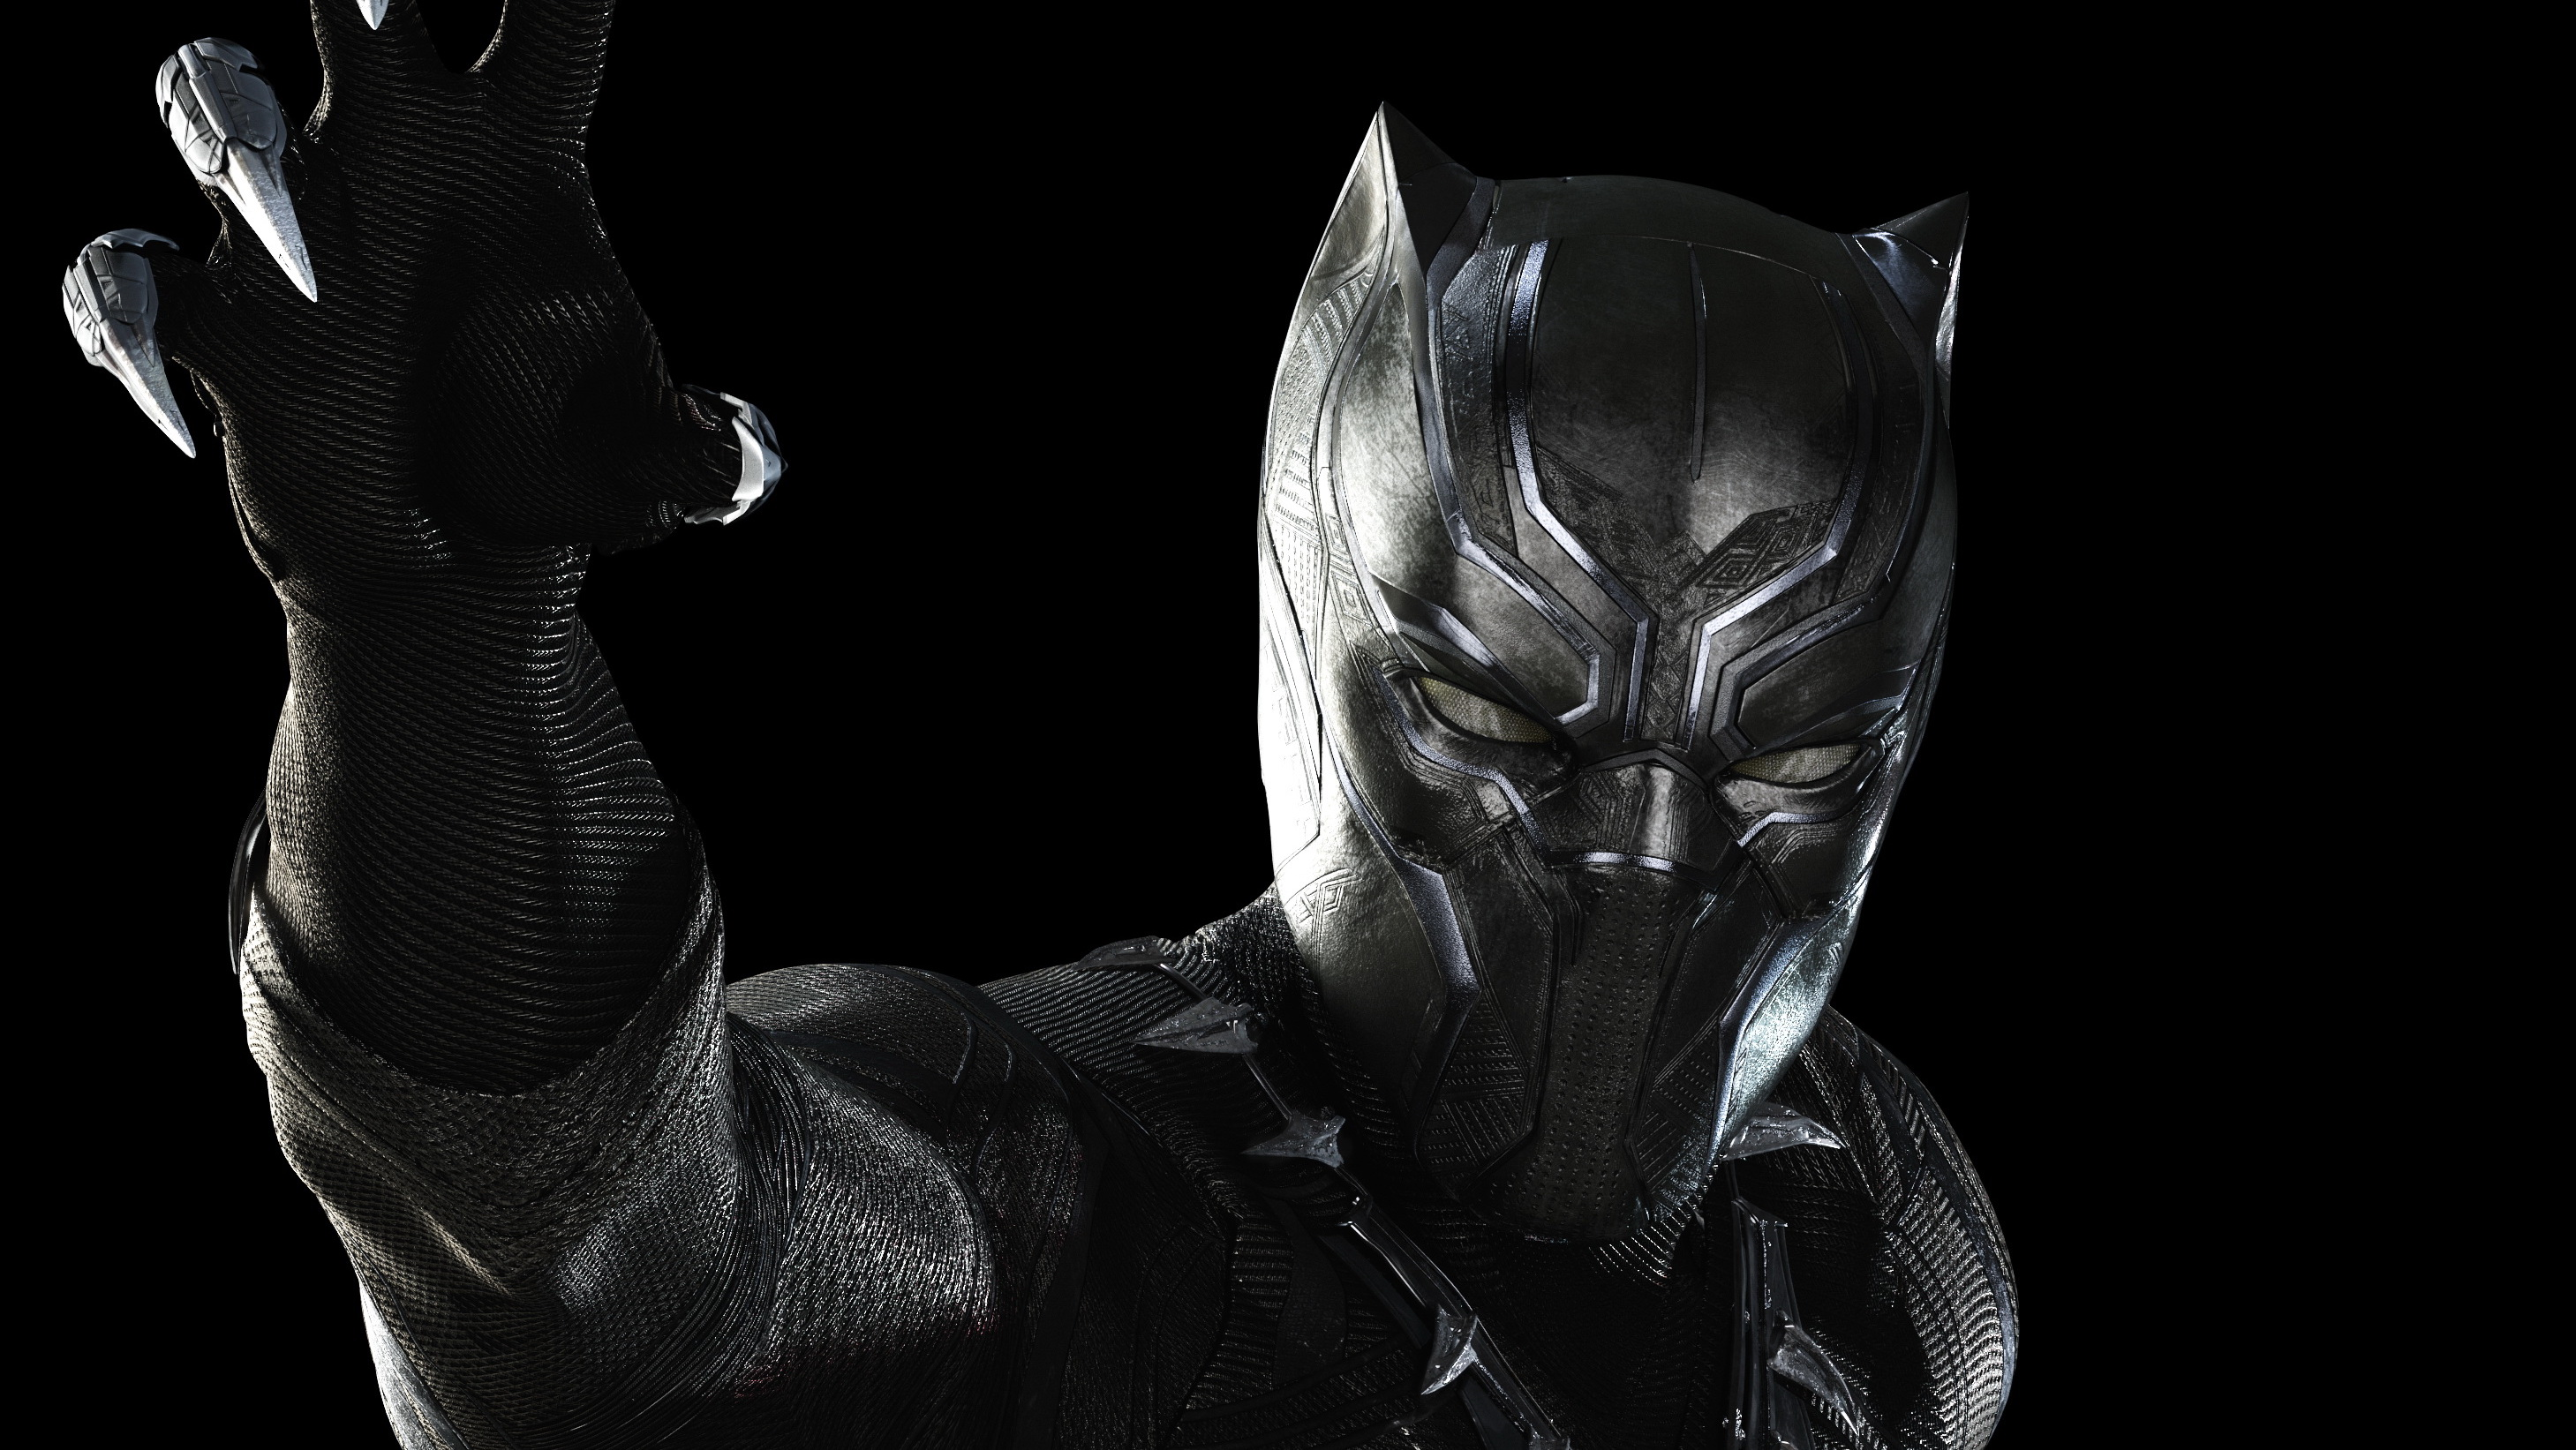 black_panther_solo_lutBaked.1_R_SMPL F